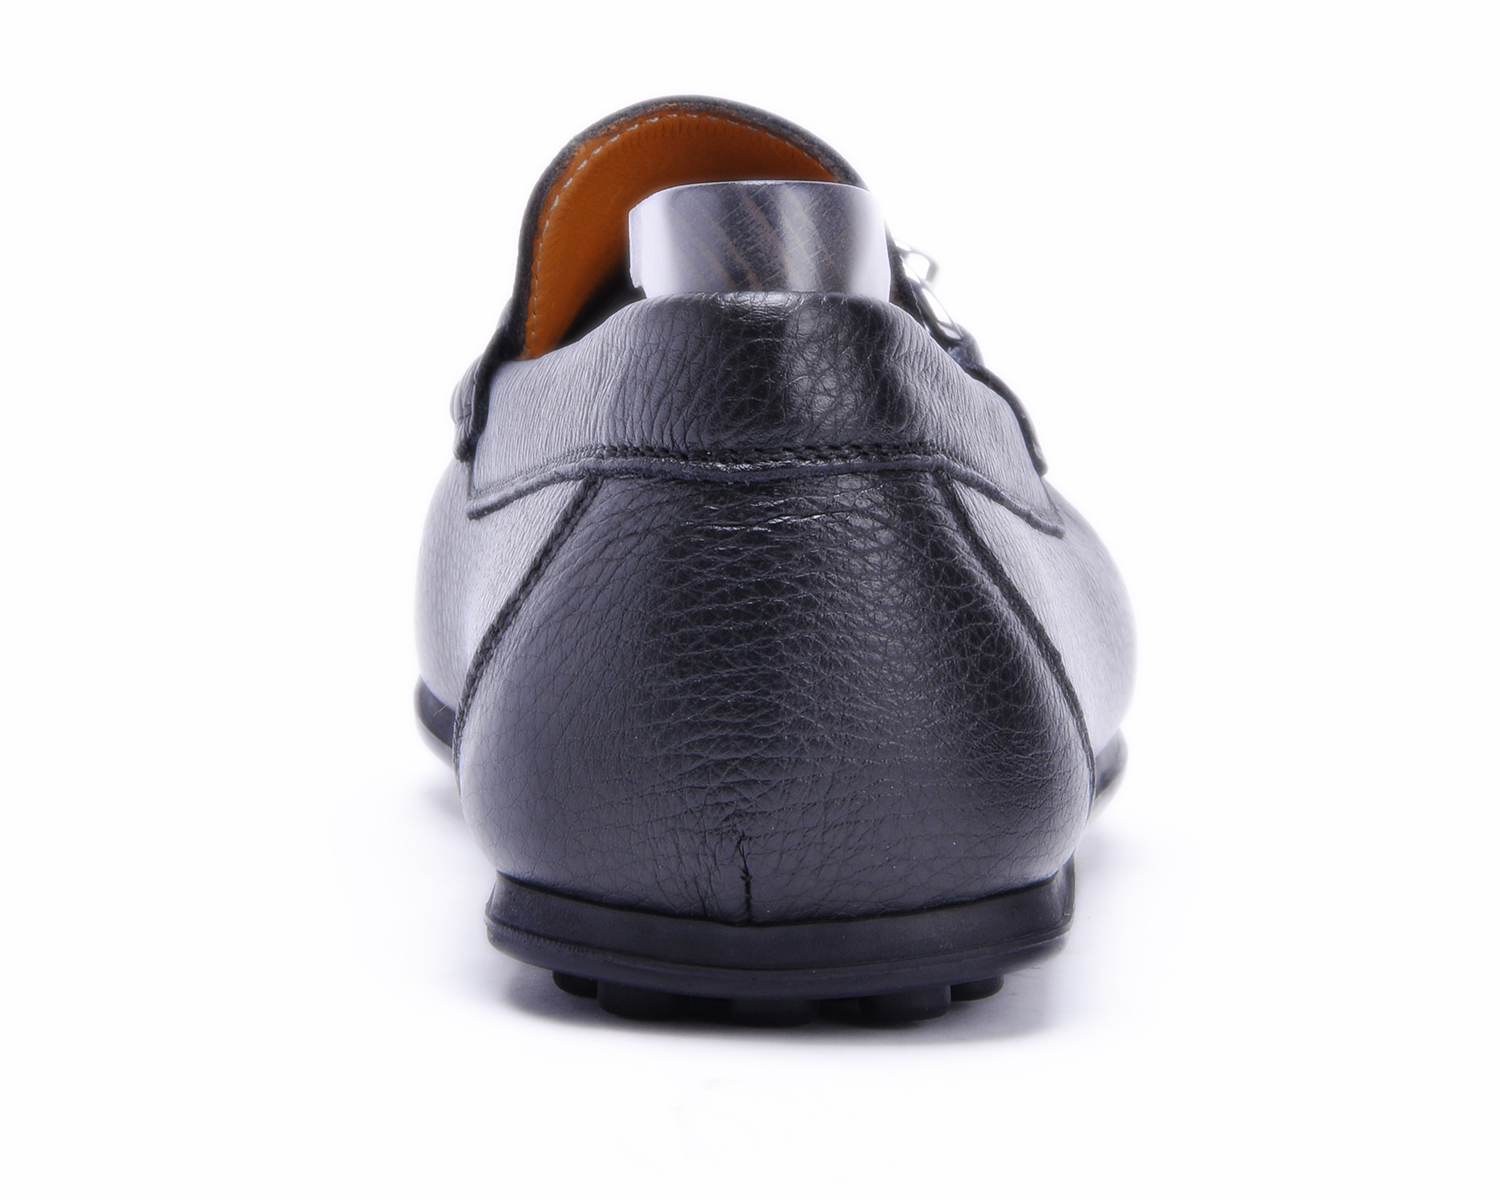 Giày moccasin Italy Gianni Conti SP9640GP